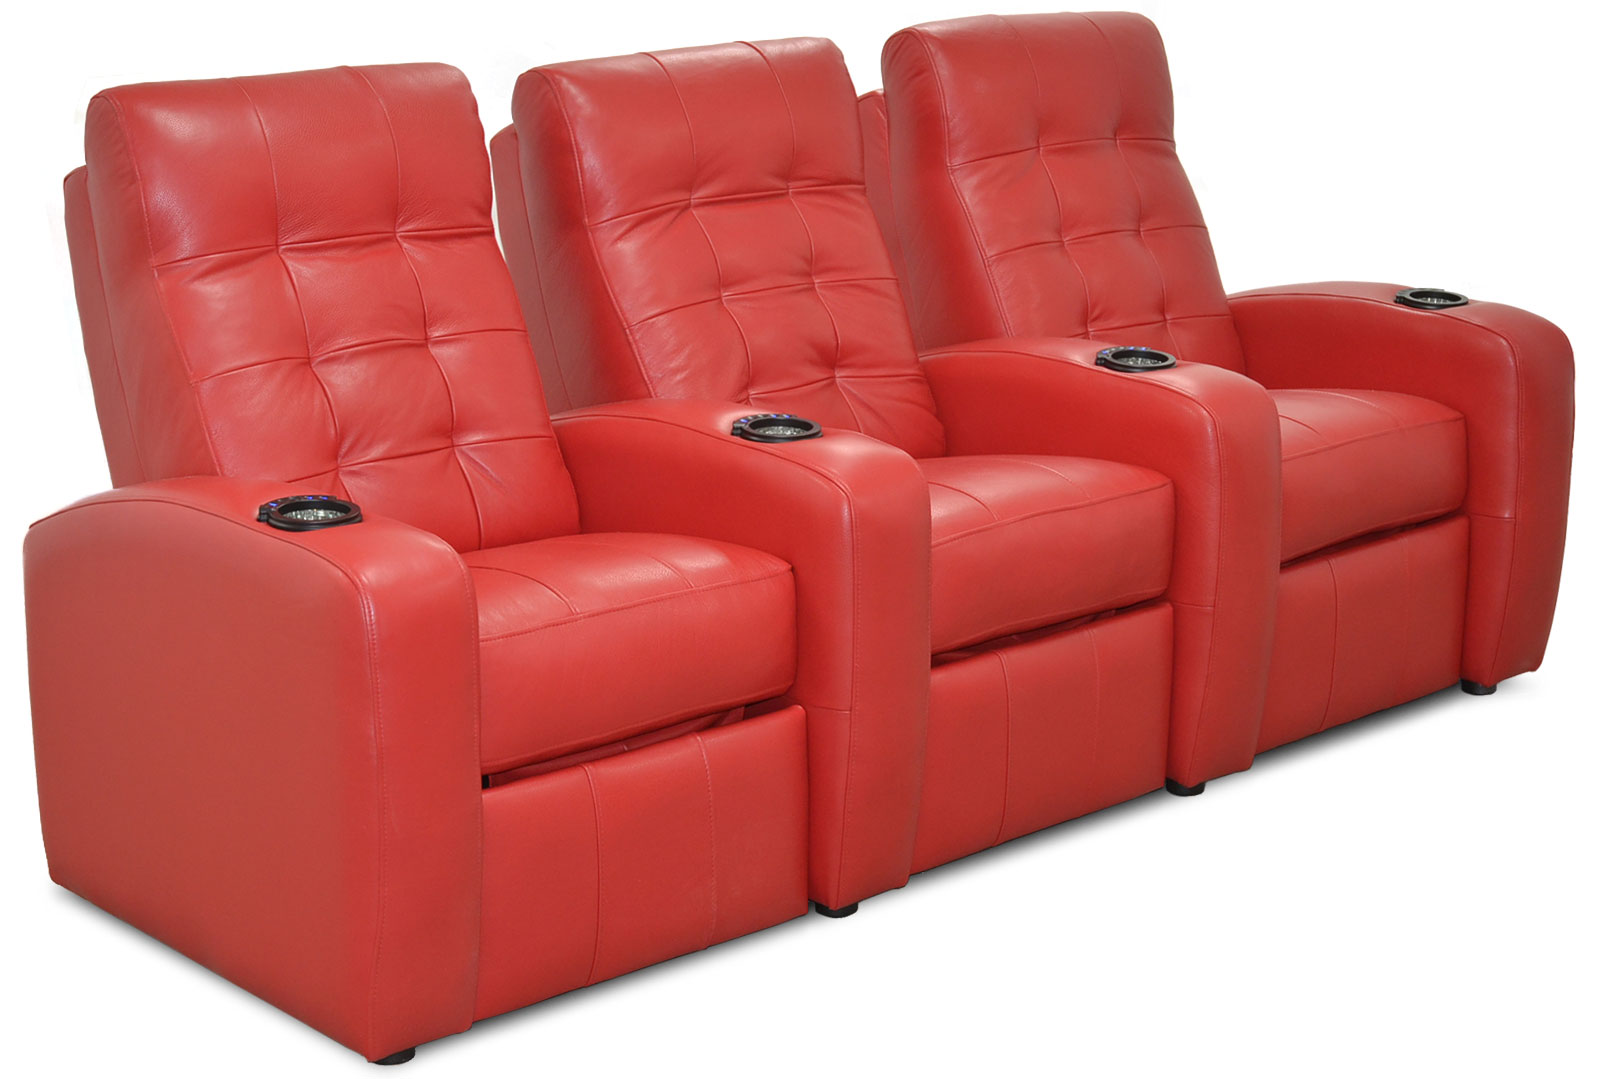 Leather Sofa Company Dallas The Leather Sofa Company Furniture Stores Dallas Tx Yelp Dallas